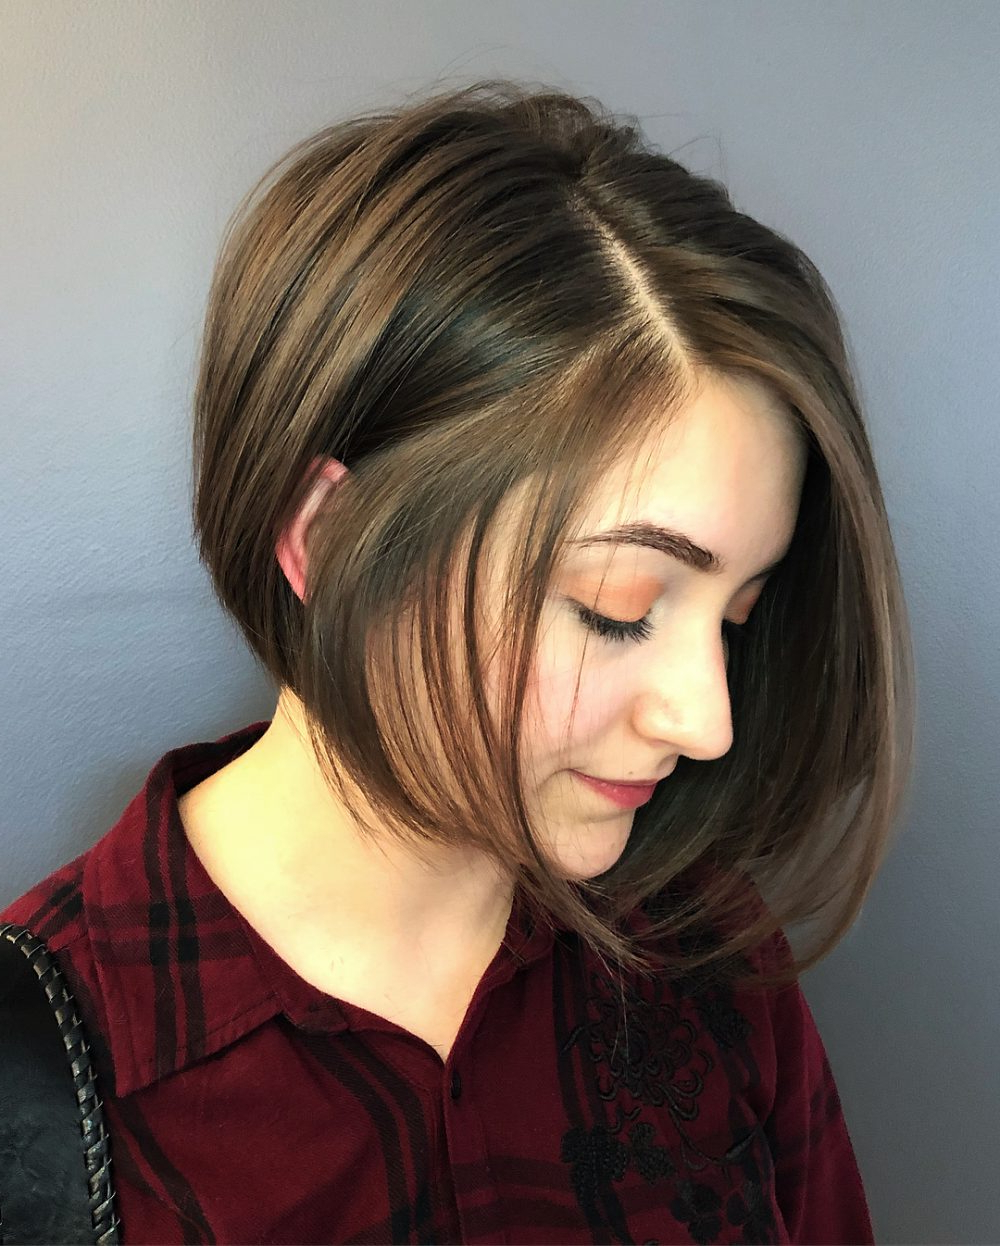 33 Flattering Short Hairstyles For Round Faces In 2018 Inside Short Haircuts For Round Faces With Curly Hair (View 21 of 25)